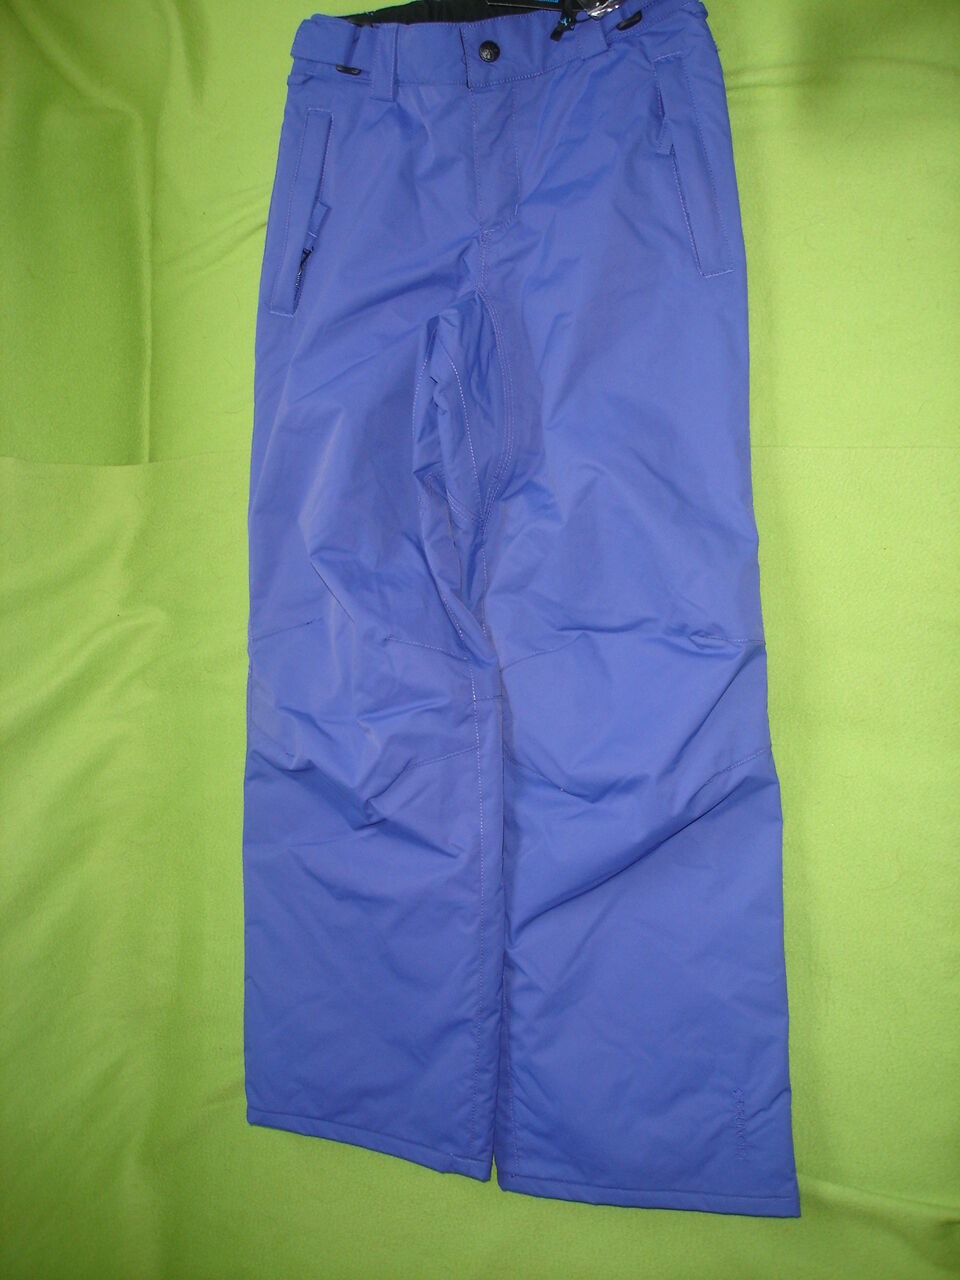 Skihose Snowboardhose Schneehose Brunotti Laaskes Girls Snowpant Gr. 140 Lila